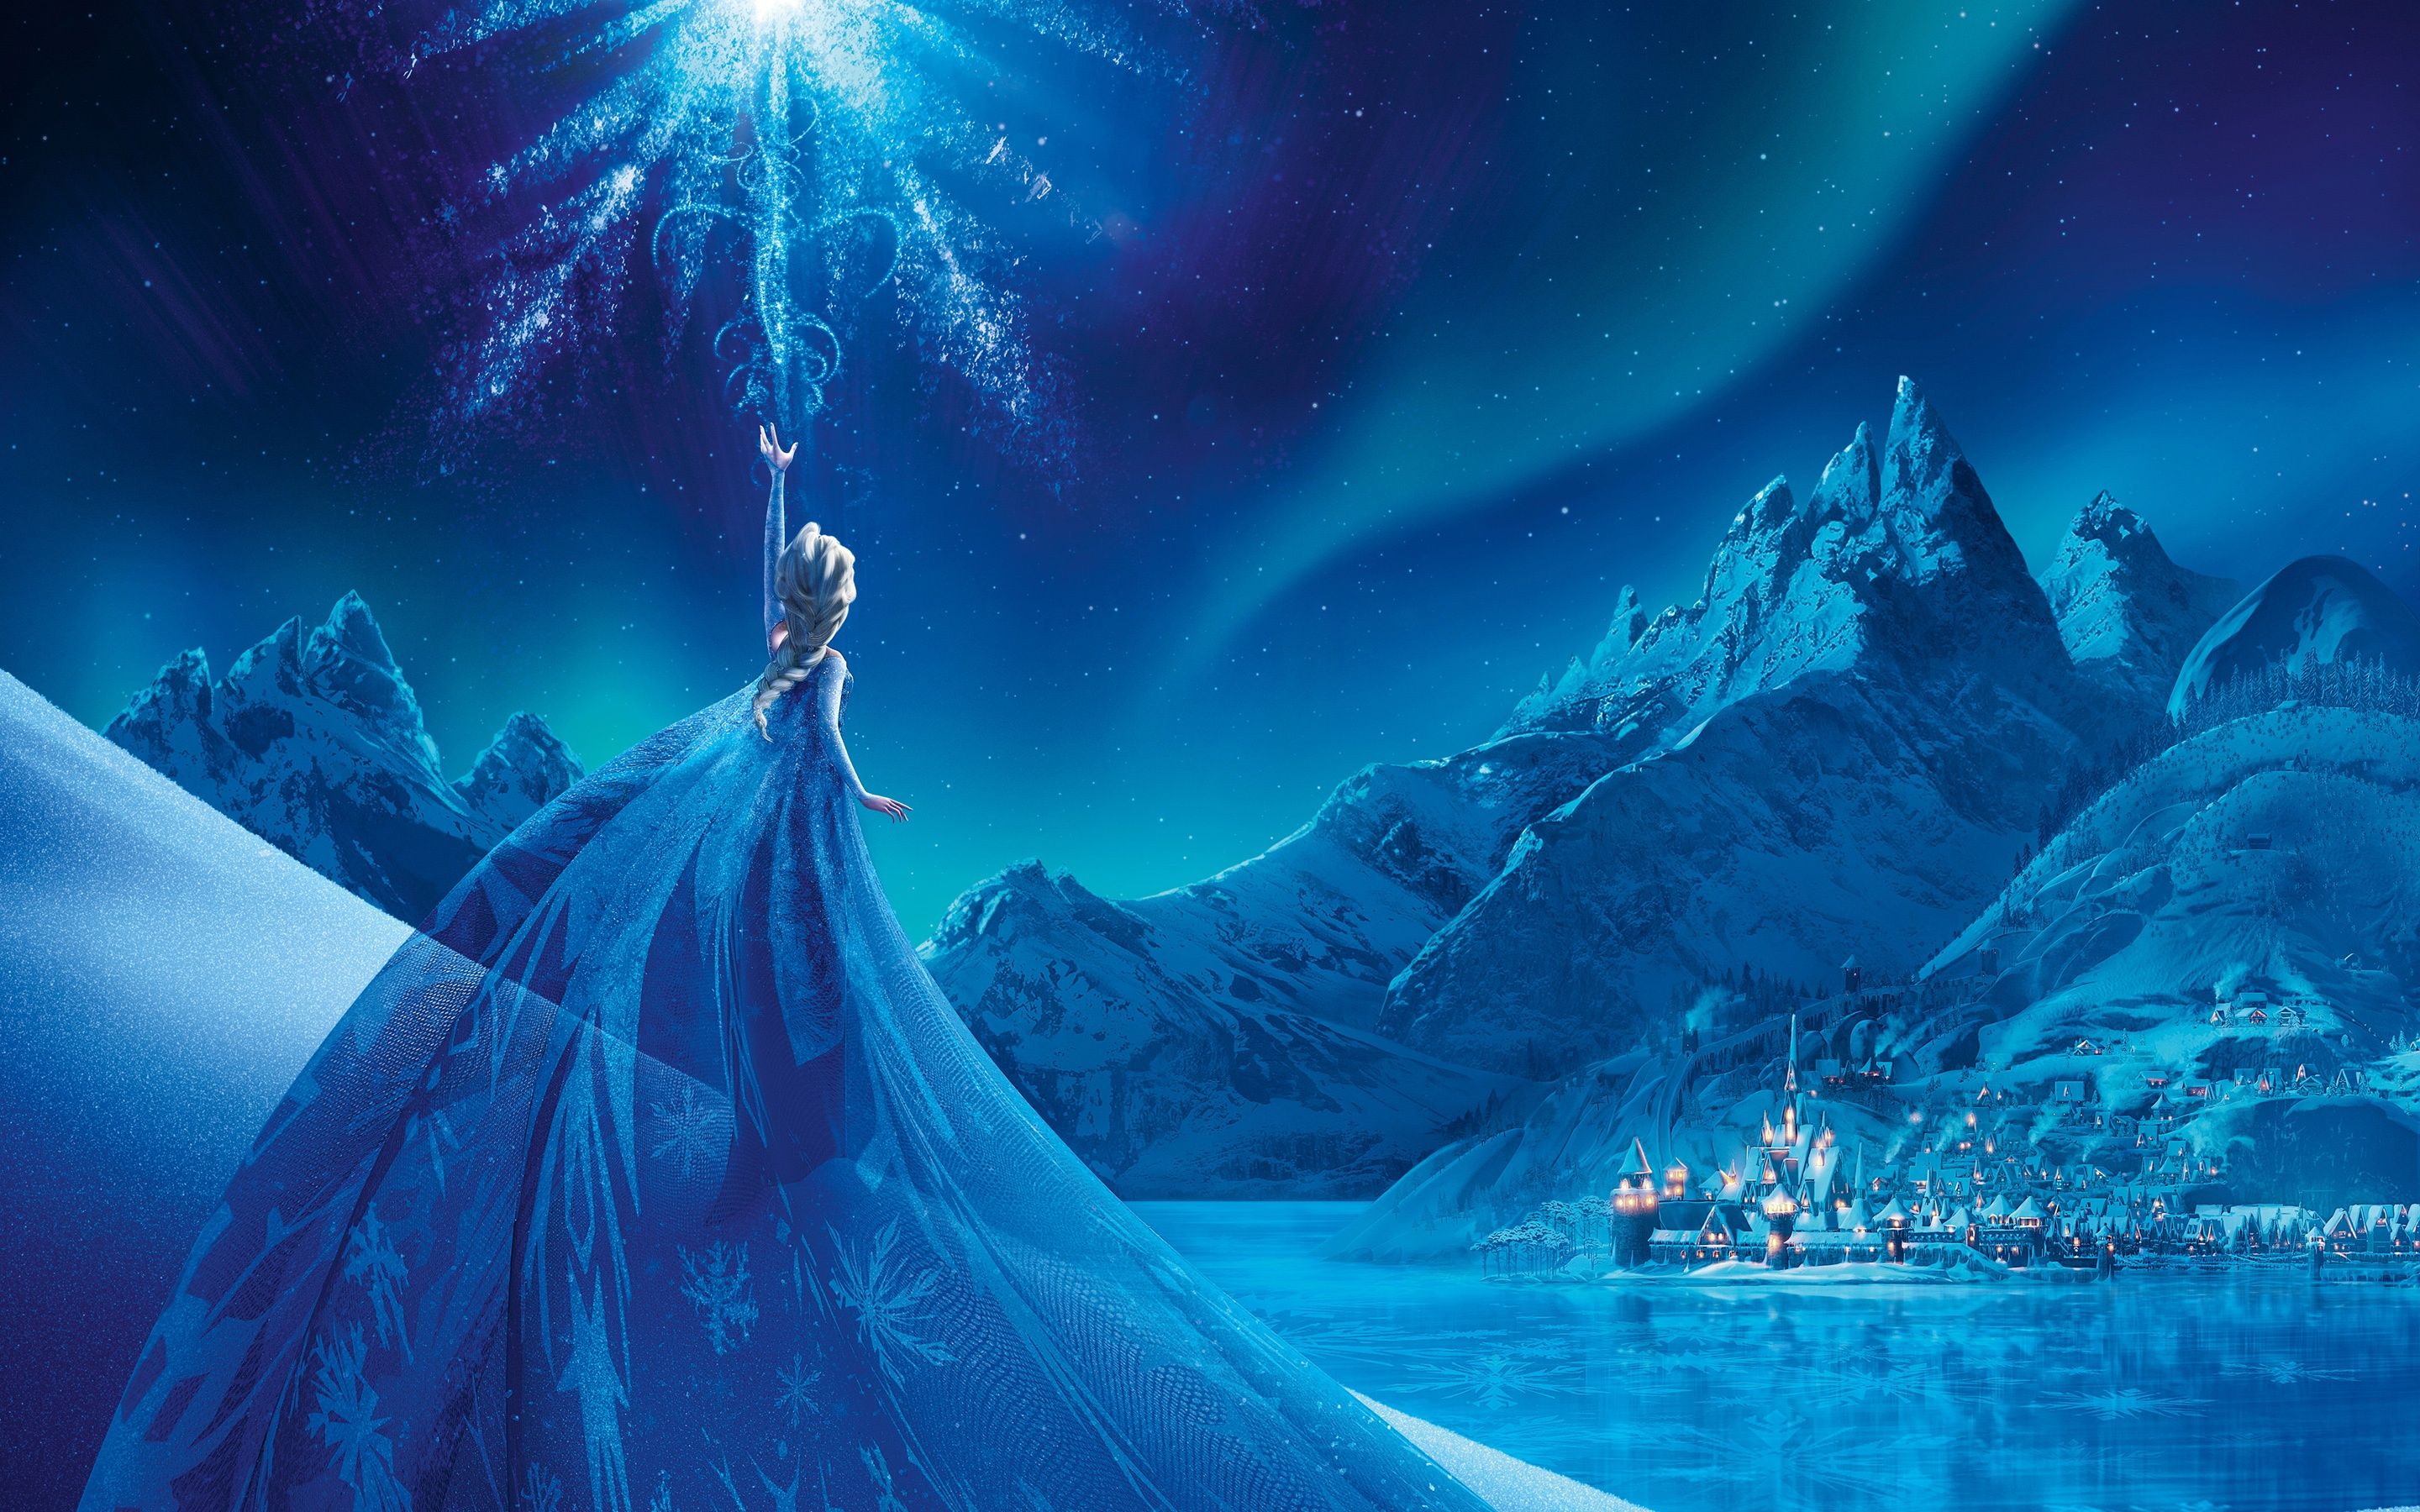 Coloring Pages For Frozen The Movie : Frozen ideas frozen party bedroom decor ideas and coloring pages